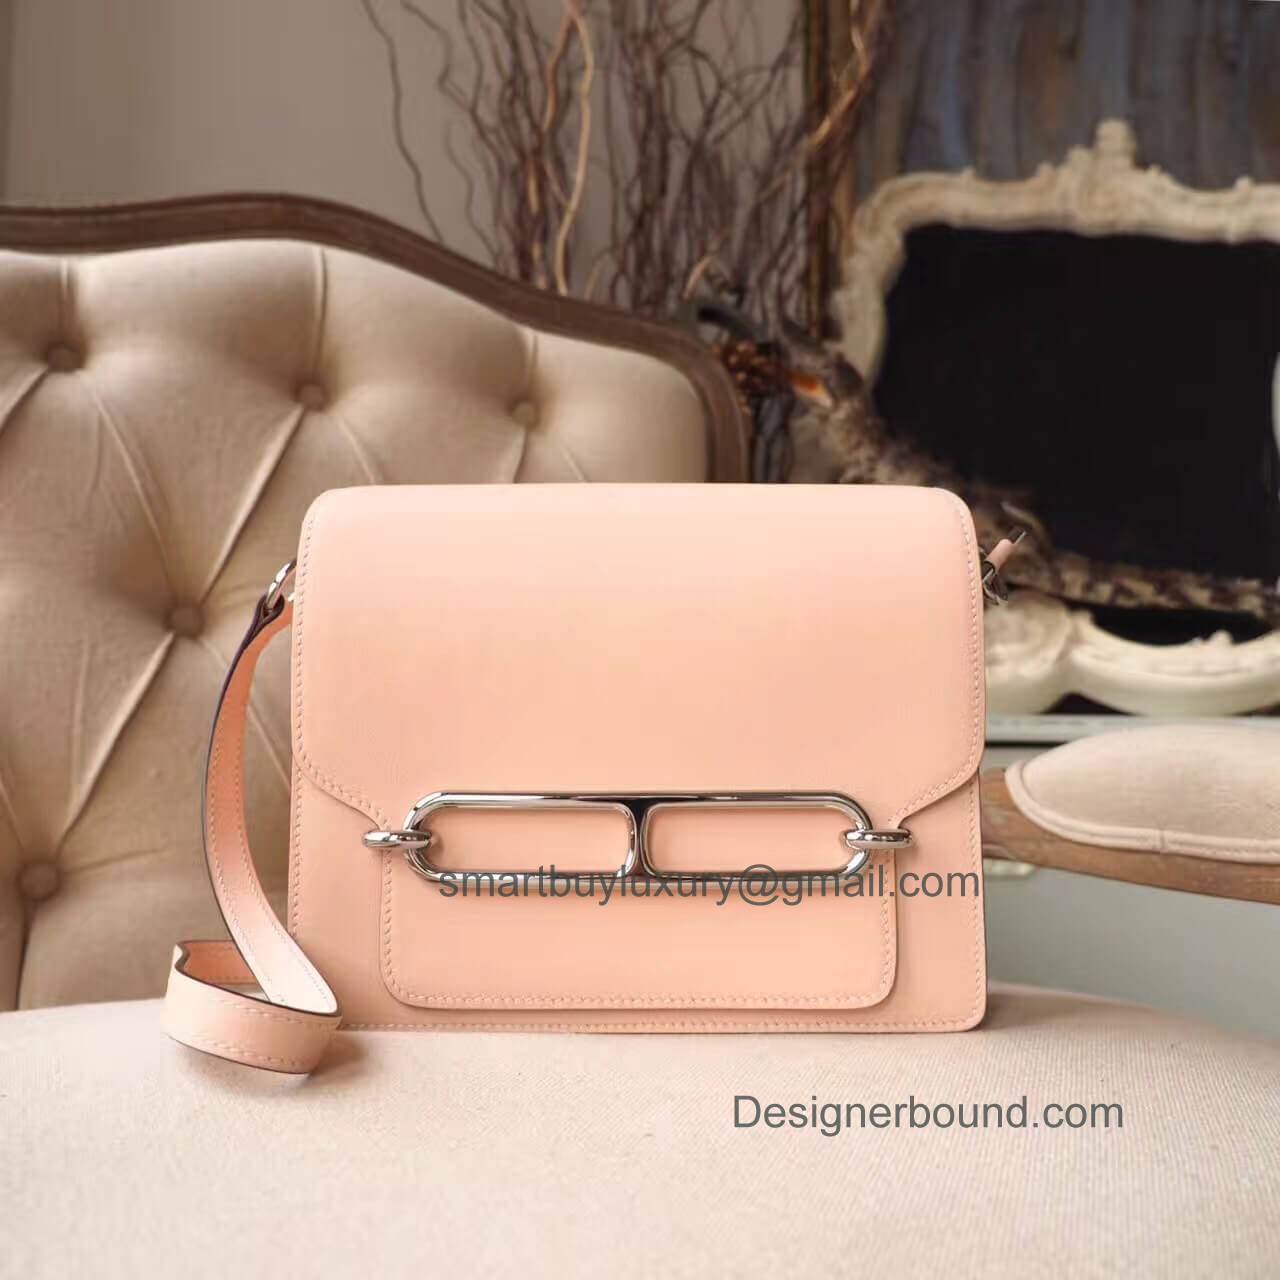 Hermes Roulis 23 Bag White Stitching in p1 Rose Eglantine Evercolor PHW